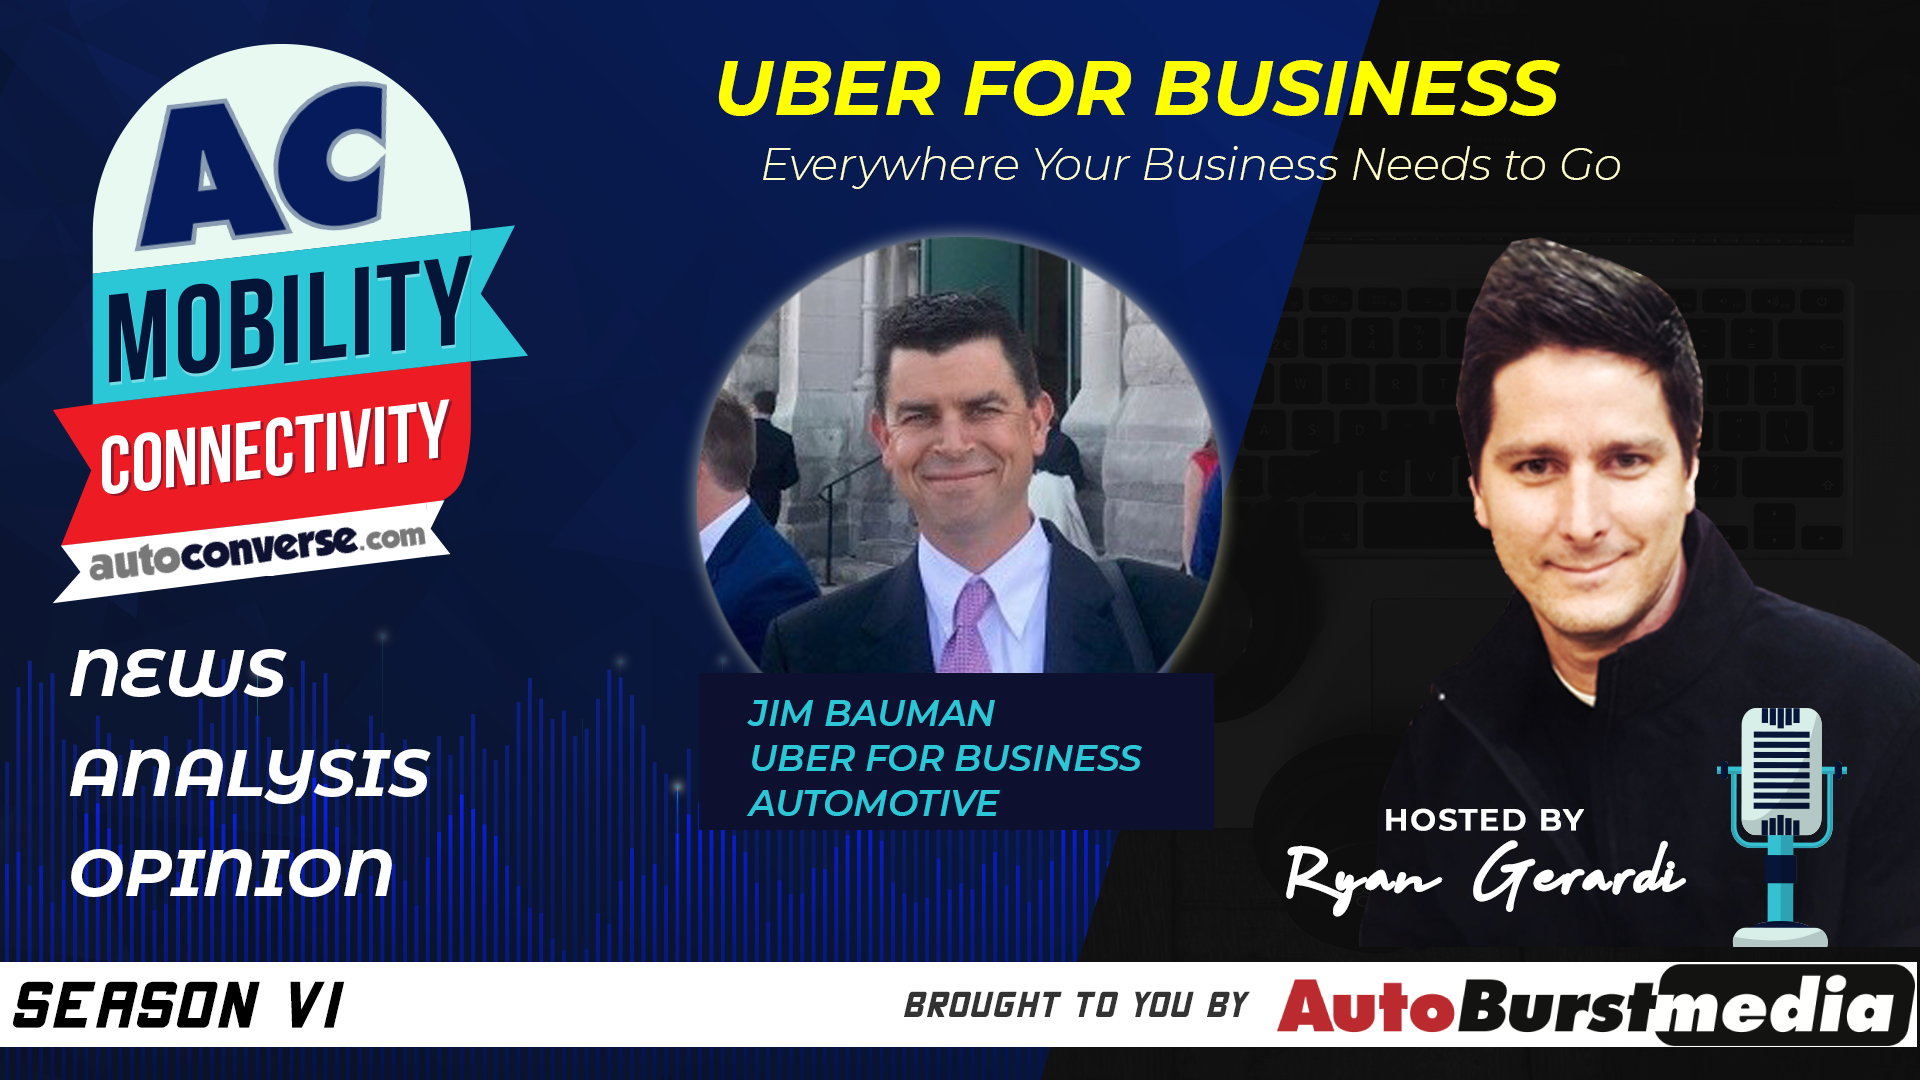 WED APR 8. How Shared Mobility is Transforming Auto Retail. Conversation with Jim Bauman from Uber for Business